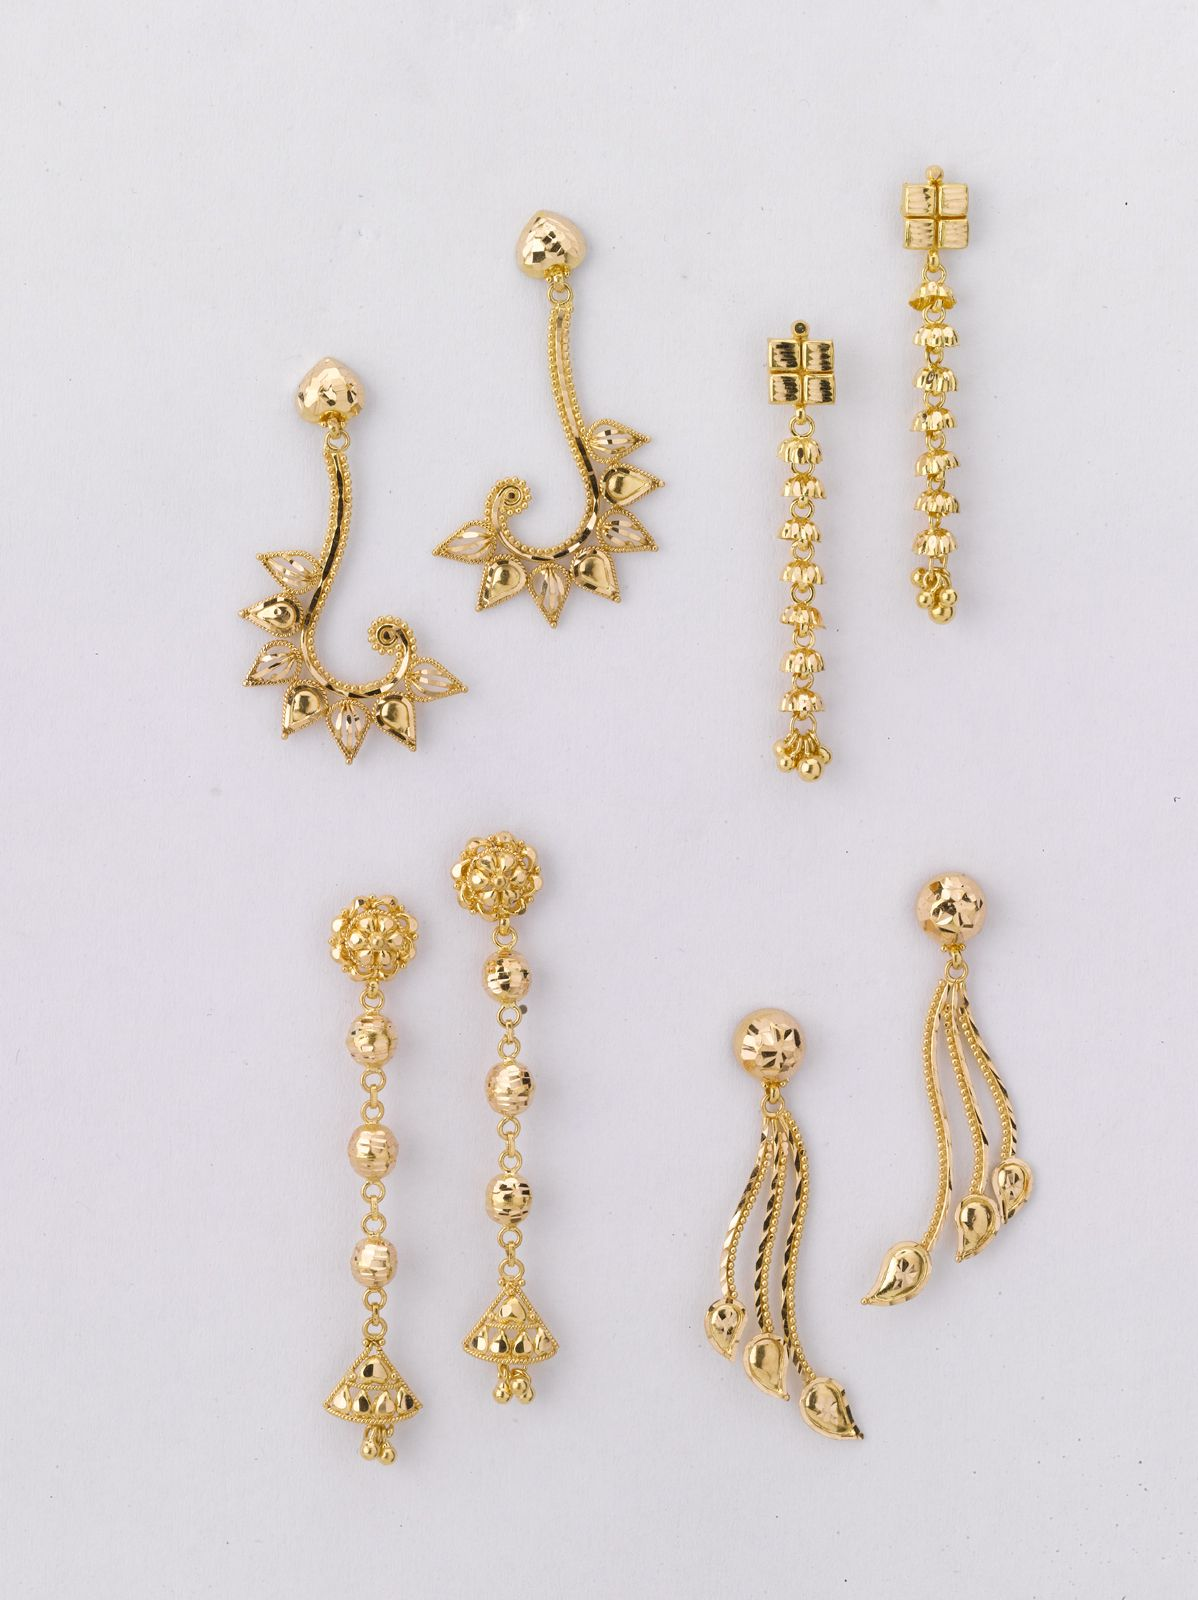 Earring 18 : Prices from left to right: a) 4.500 gm Rs ...